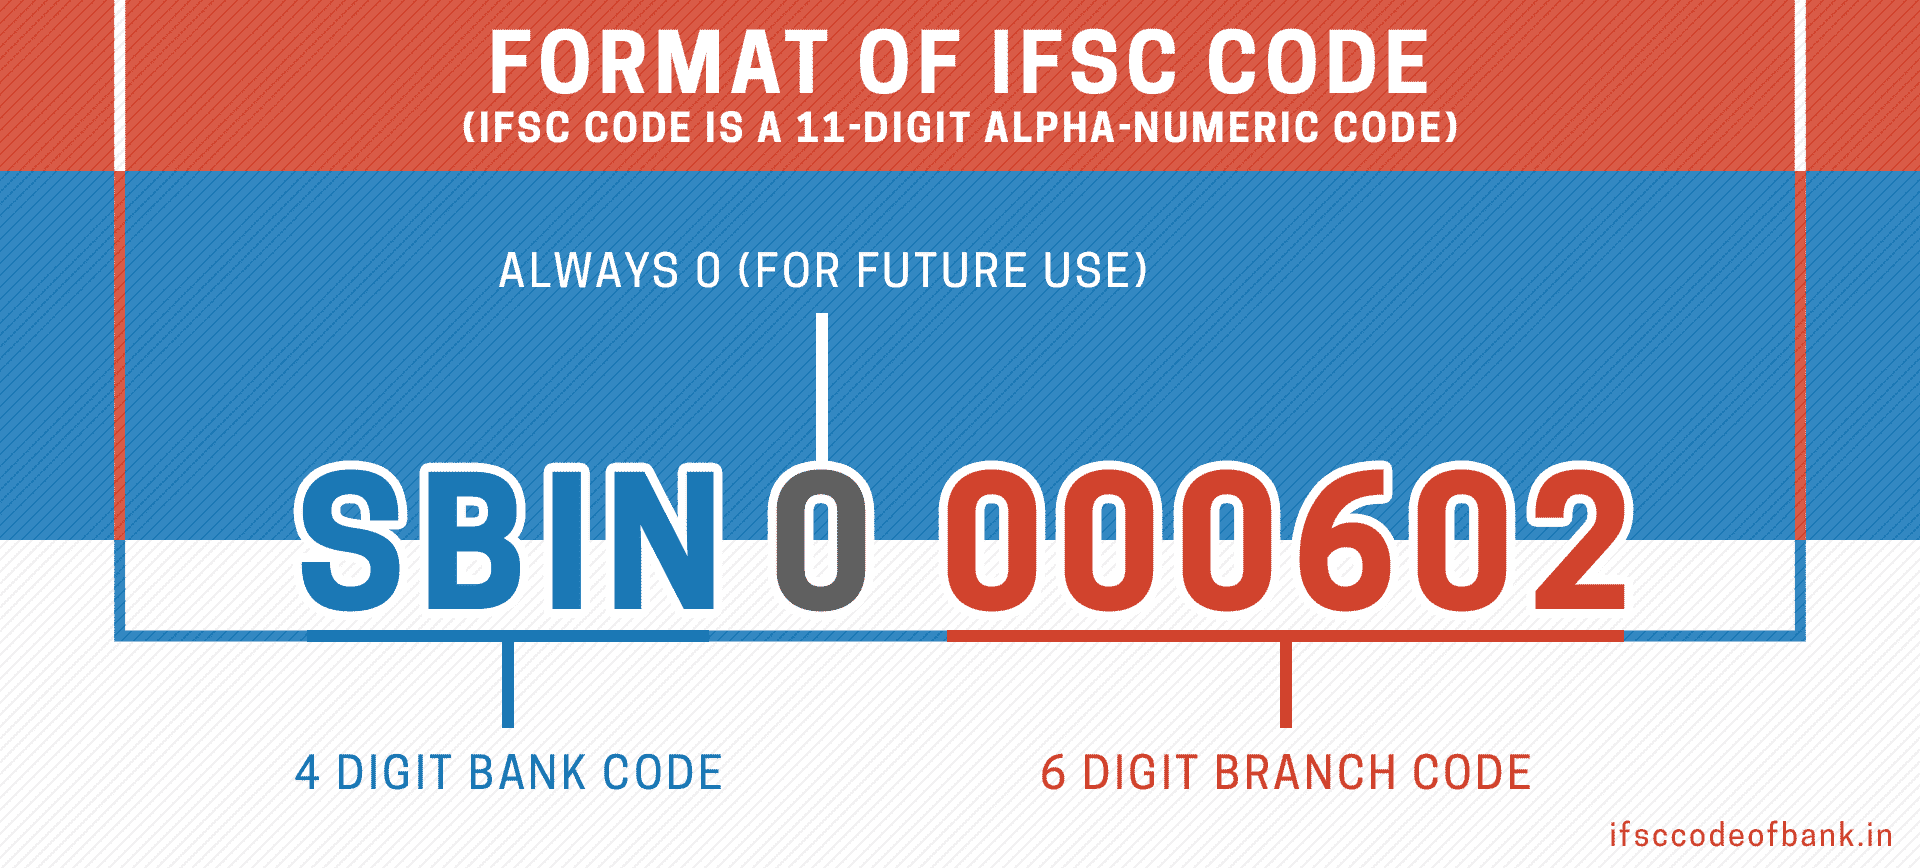 formate of IFSC/MICR Code